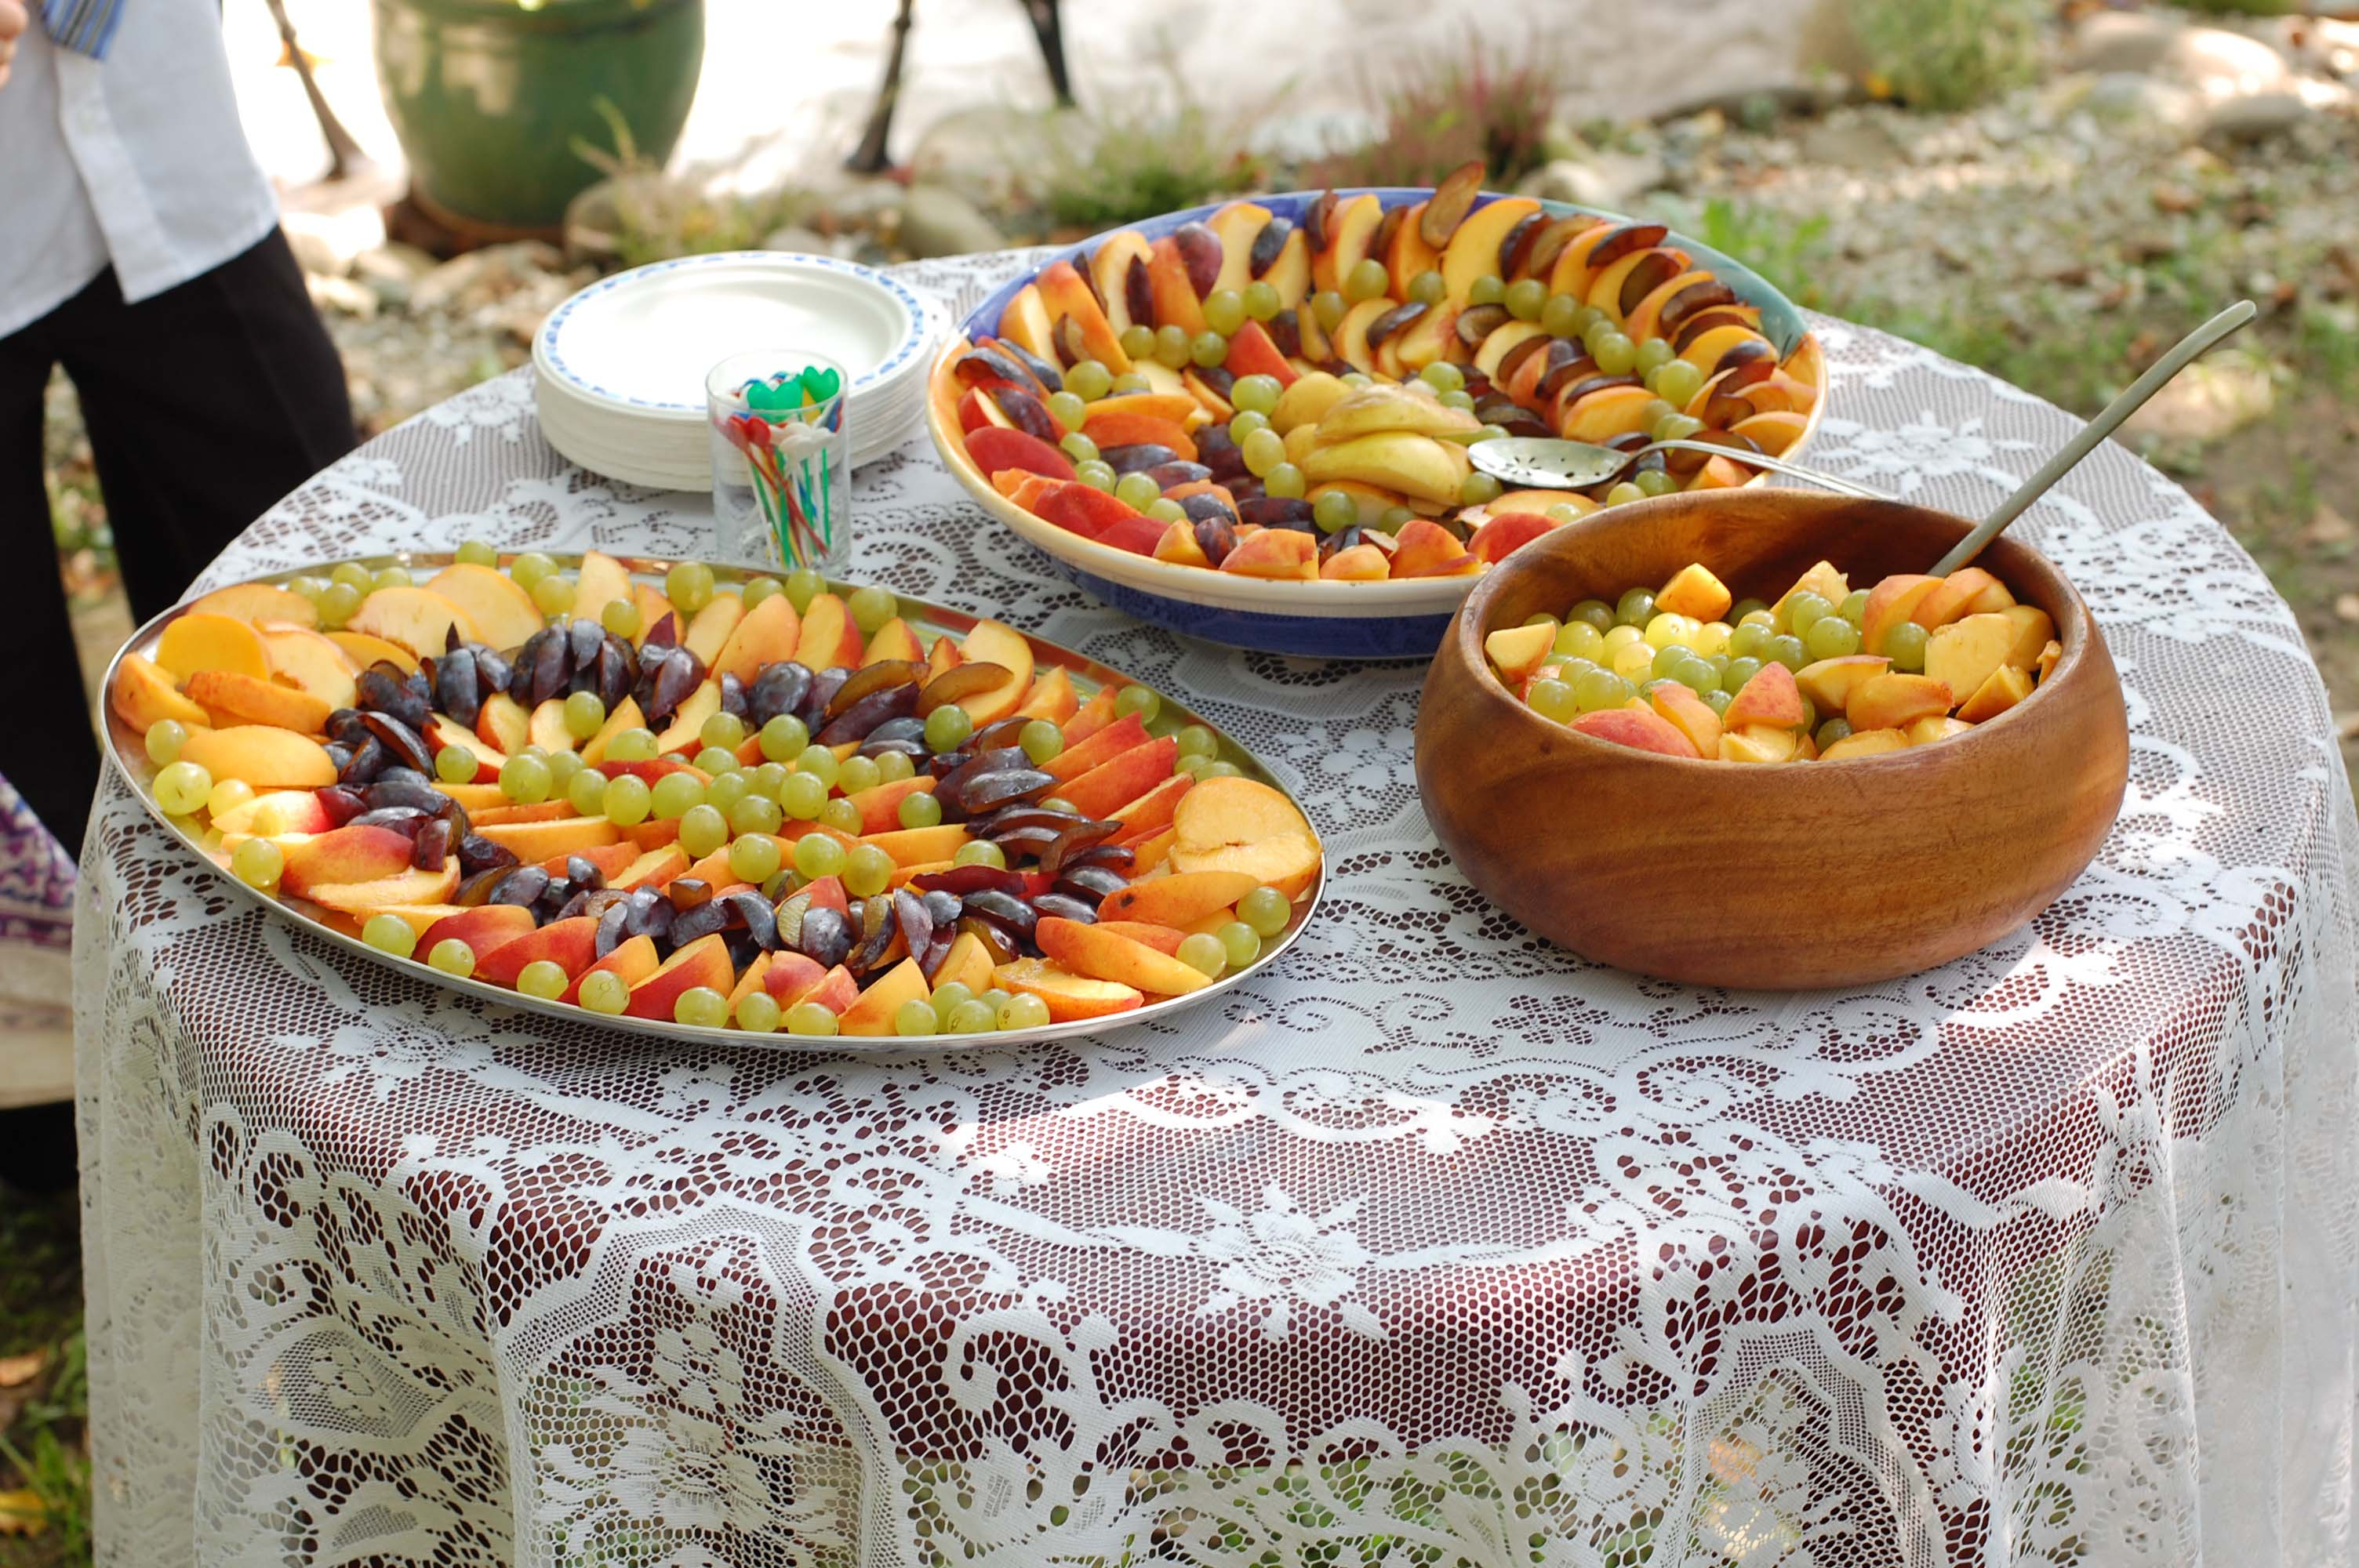 Festive Fruit Salad at wedding reception 12221425455